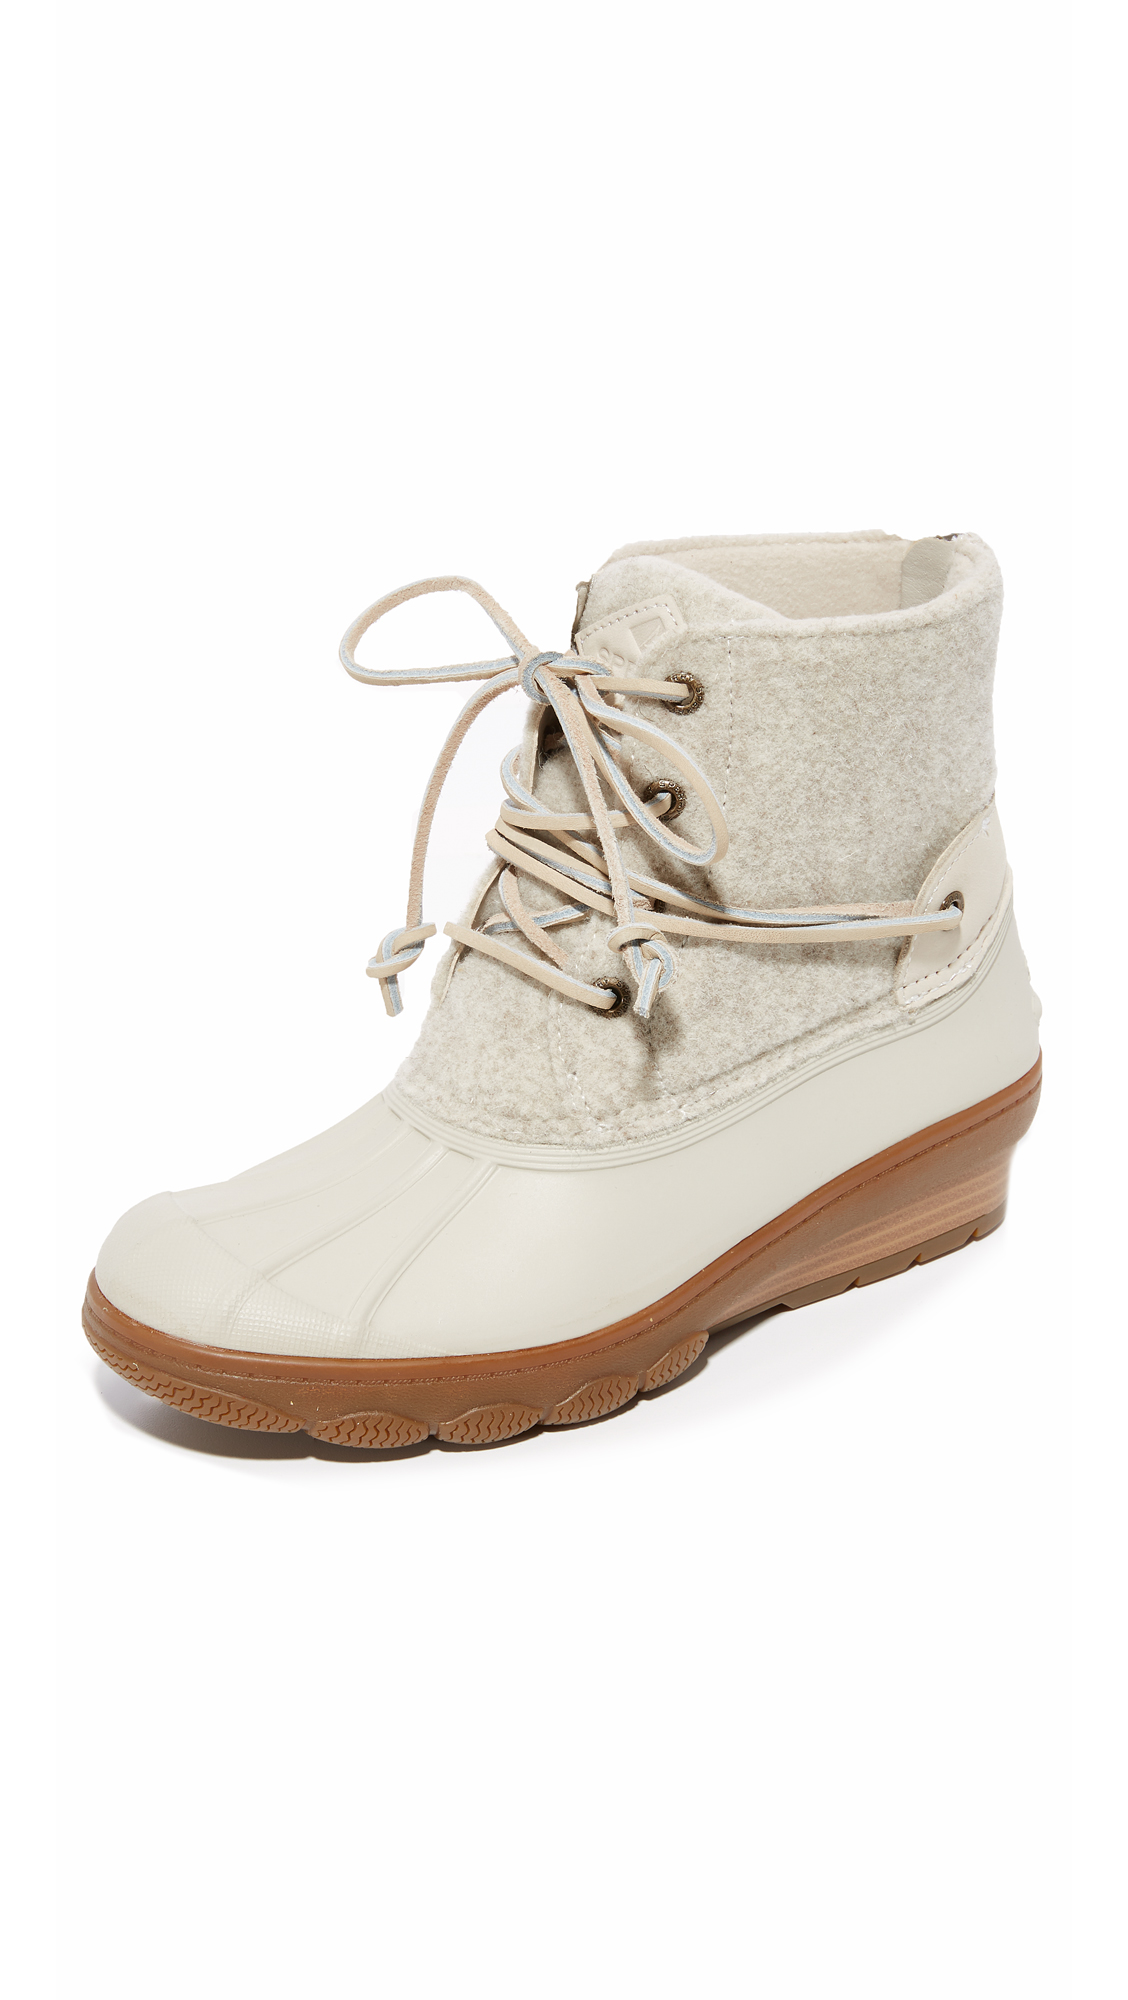 Sperry Saltwater Wedge Tide Wool Booties - Ivory